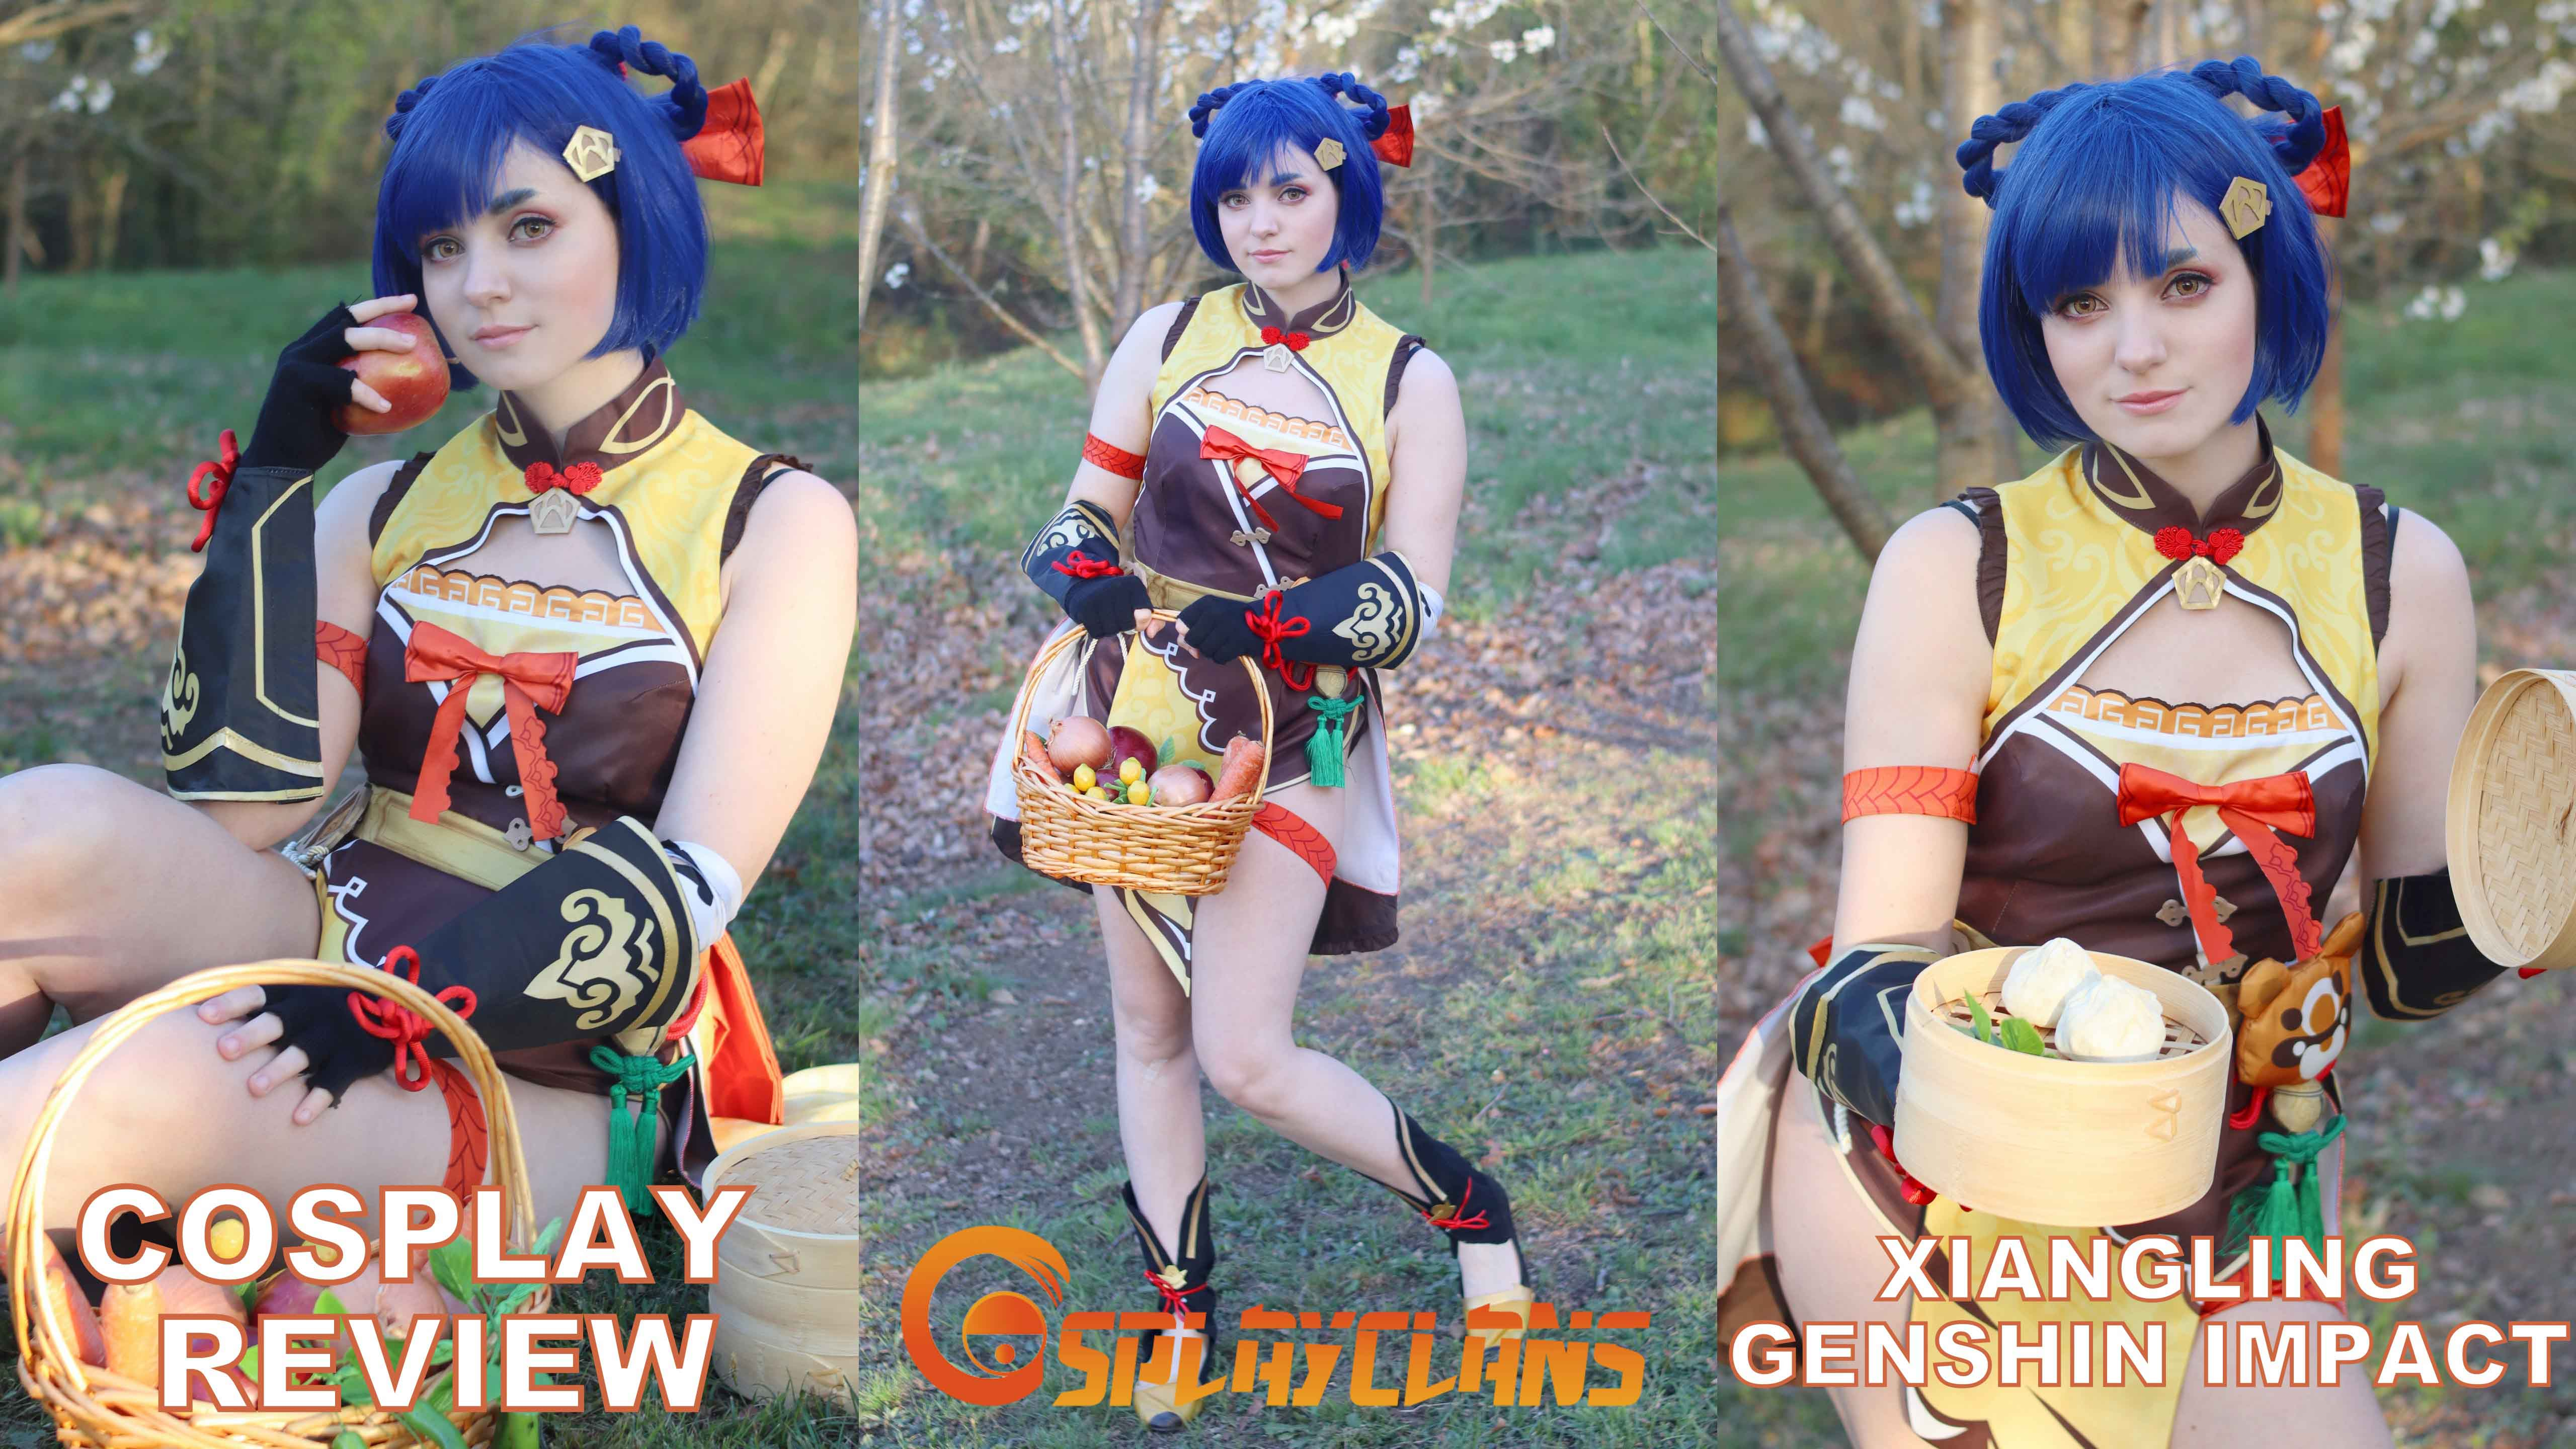 Cosplay review: Xiangling (Genshin Impact) from Cosplayclans